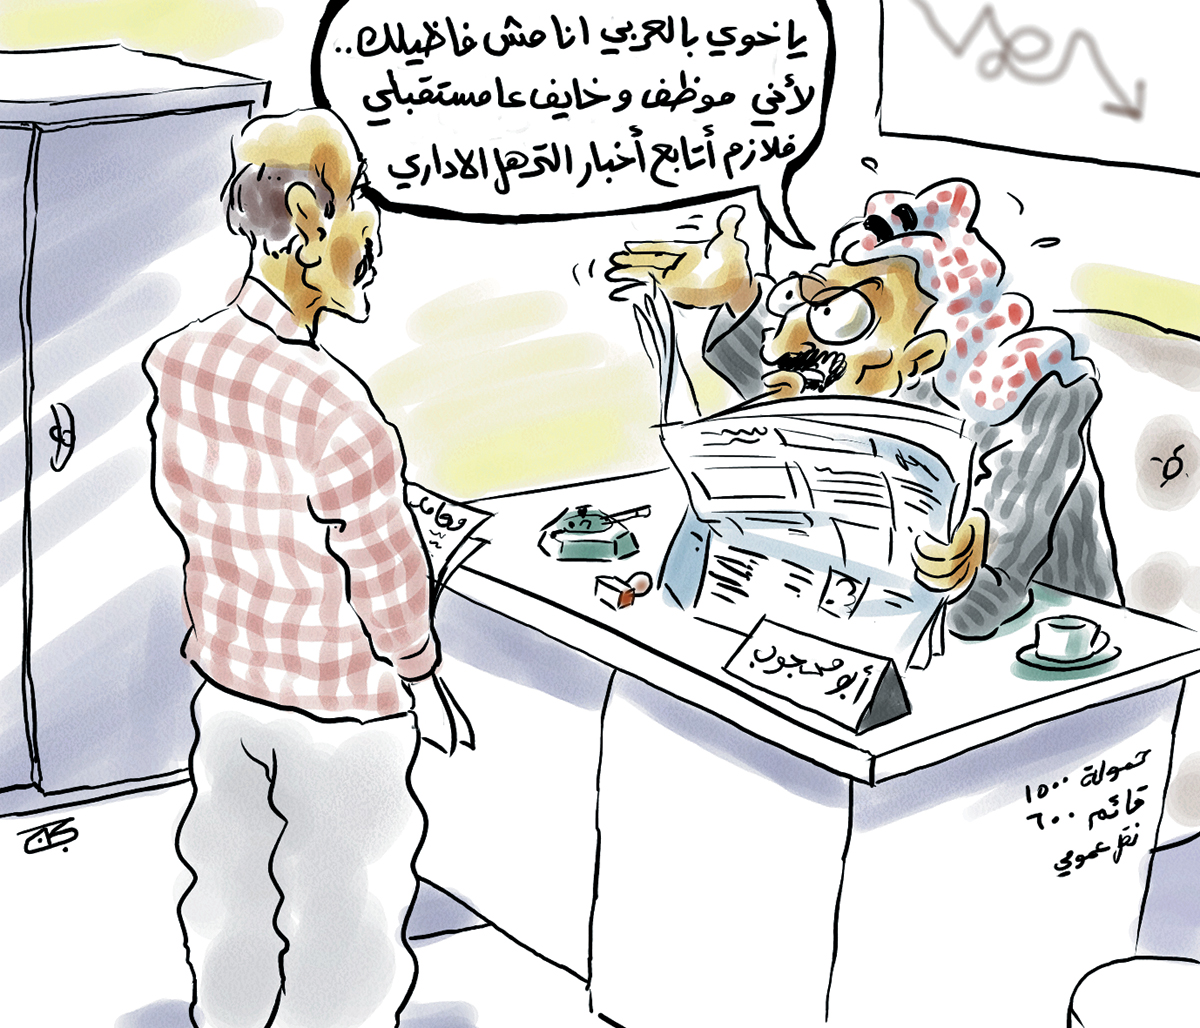 al tarahhol ana mosh office work gov corruption desk 97-05-20